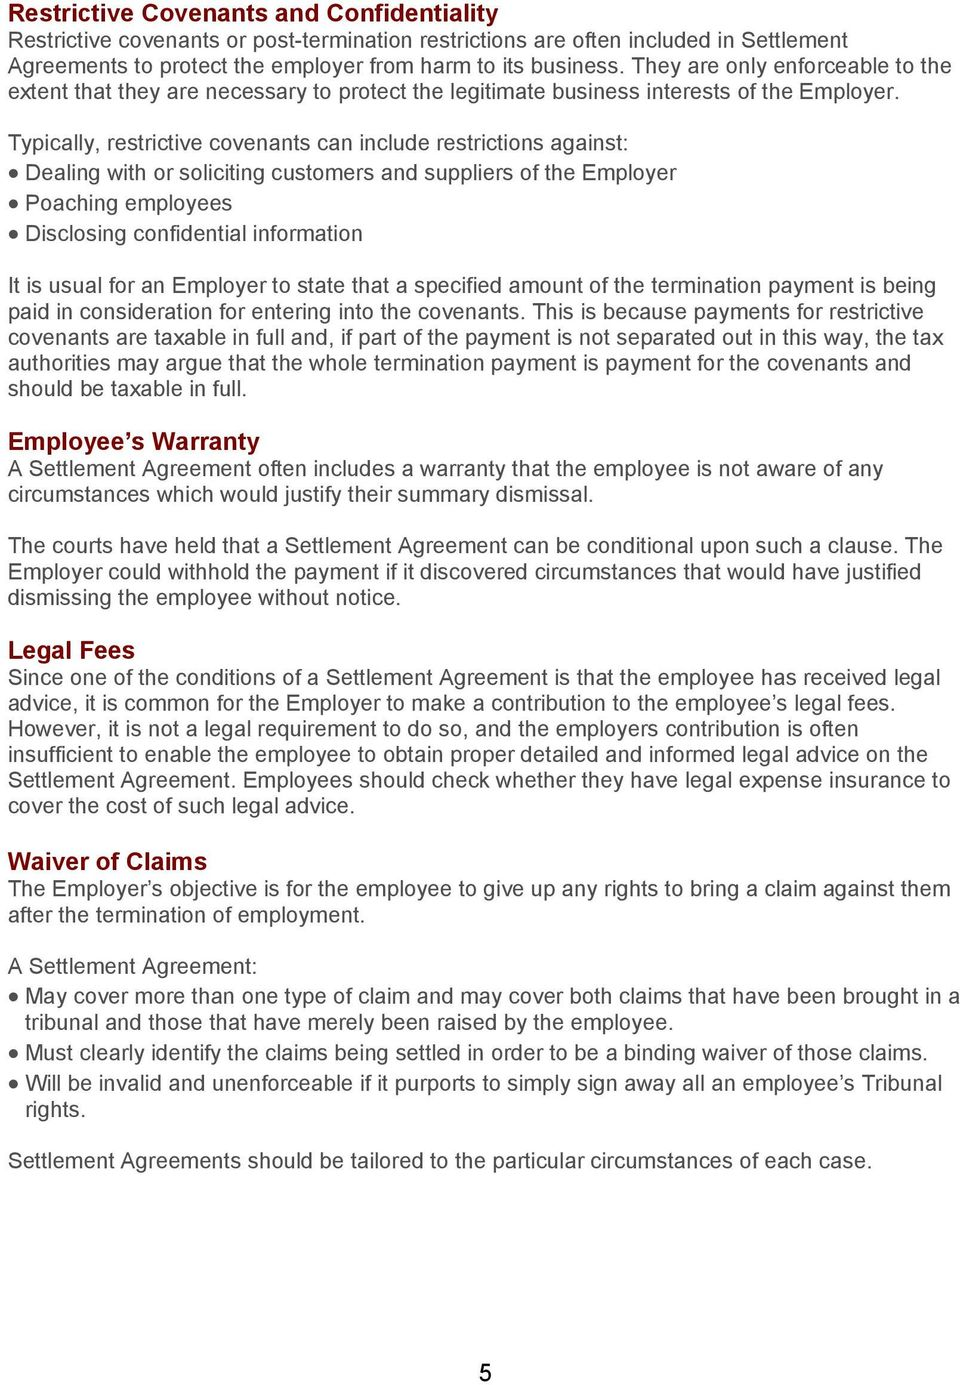 A Guide To Settlement Agreements Pdf